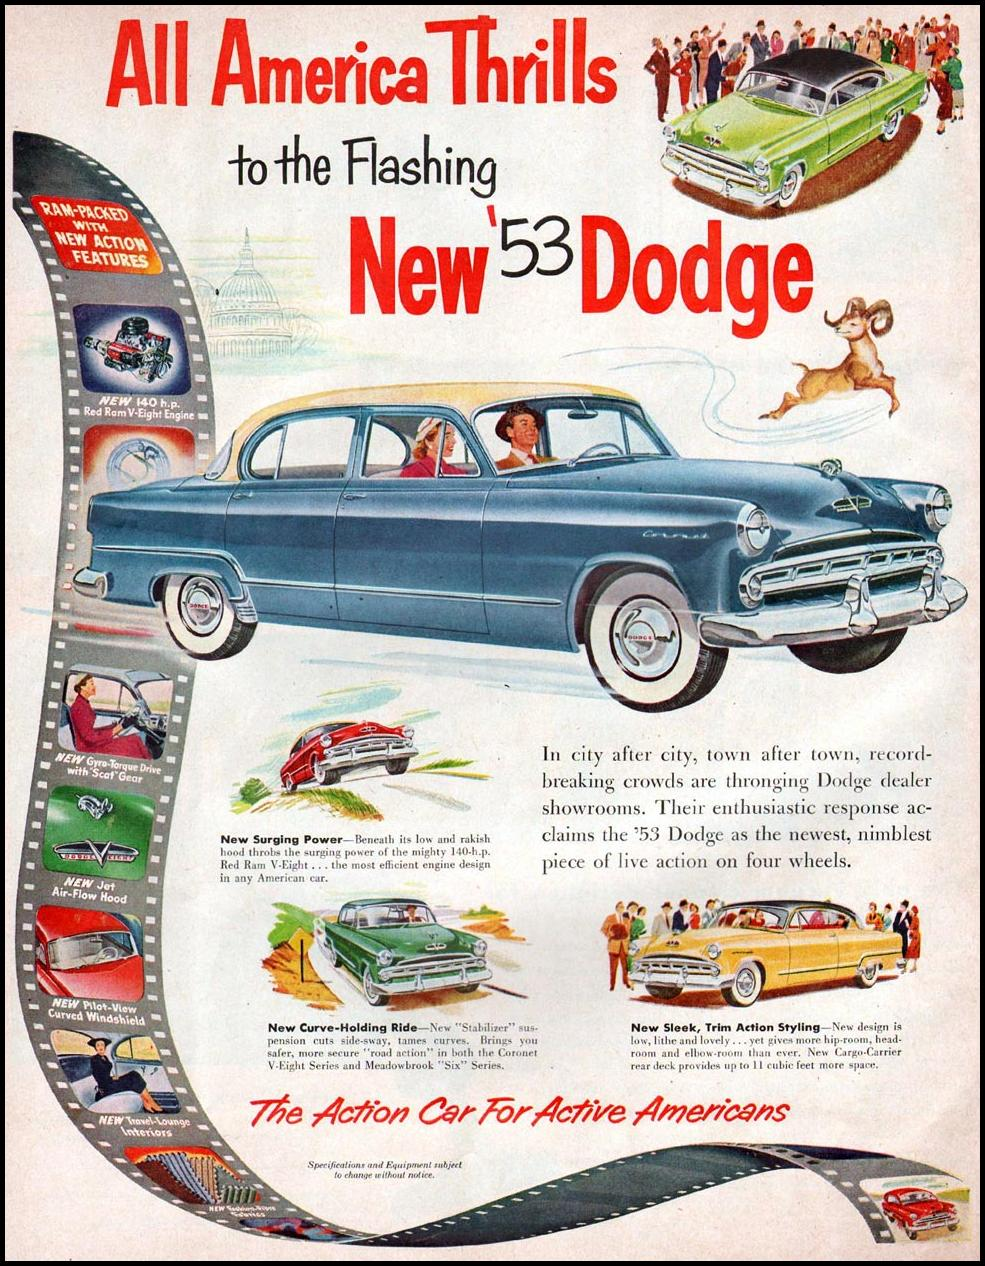 DODGE AUTOMOBILES WOMAN'S HOME COMPANION 12/01/1952 p. 20